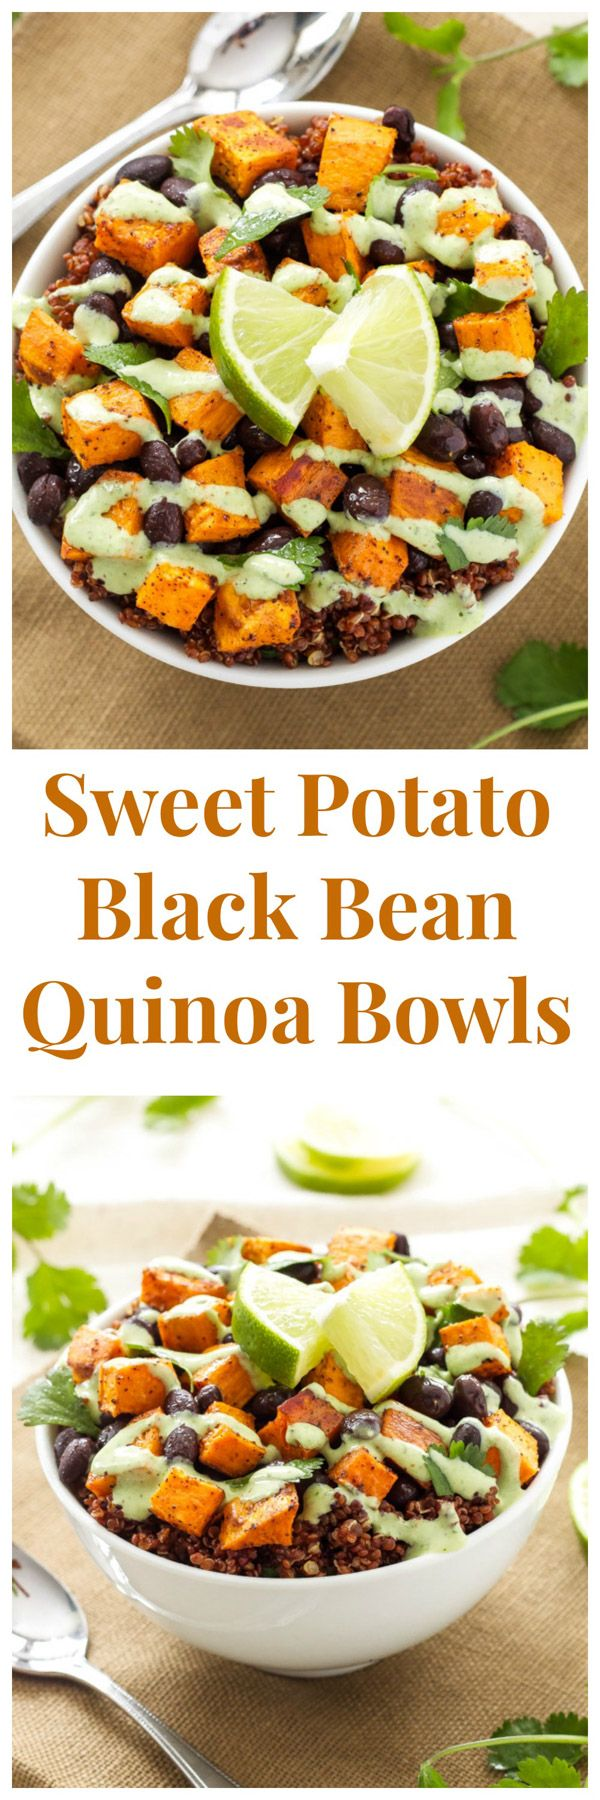 Sweet Potato and Black Bean Quinoa Bowls correct link